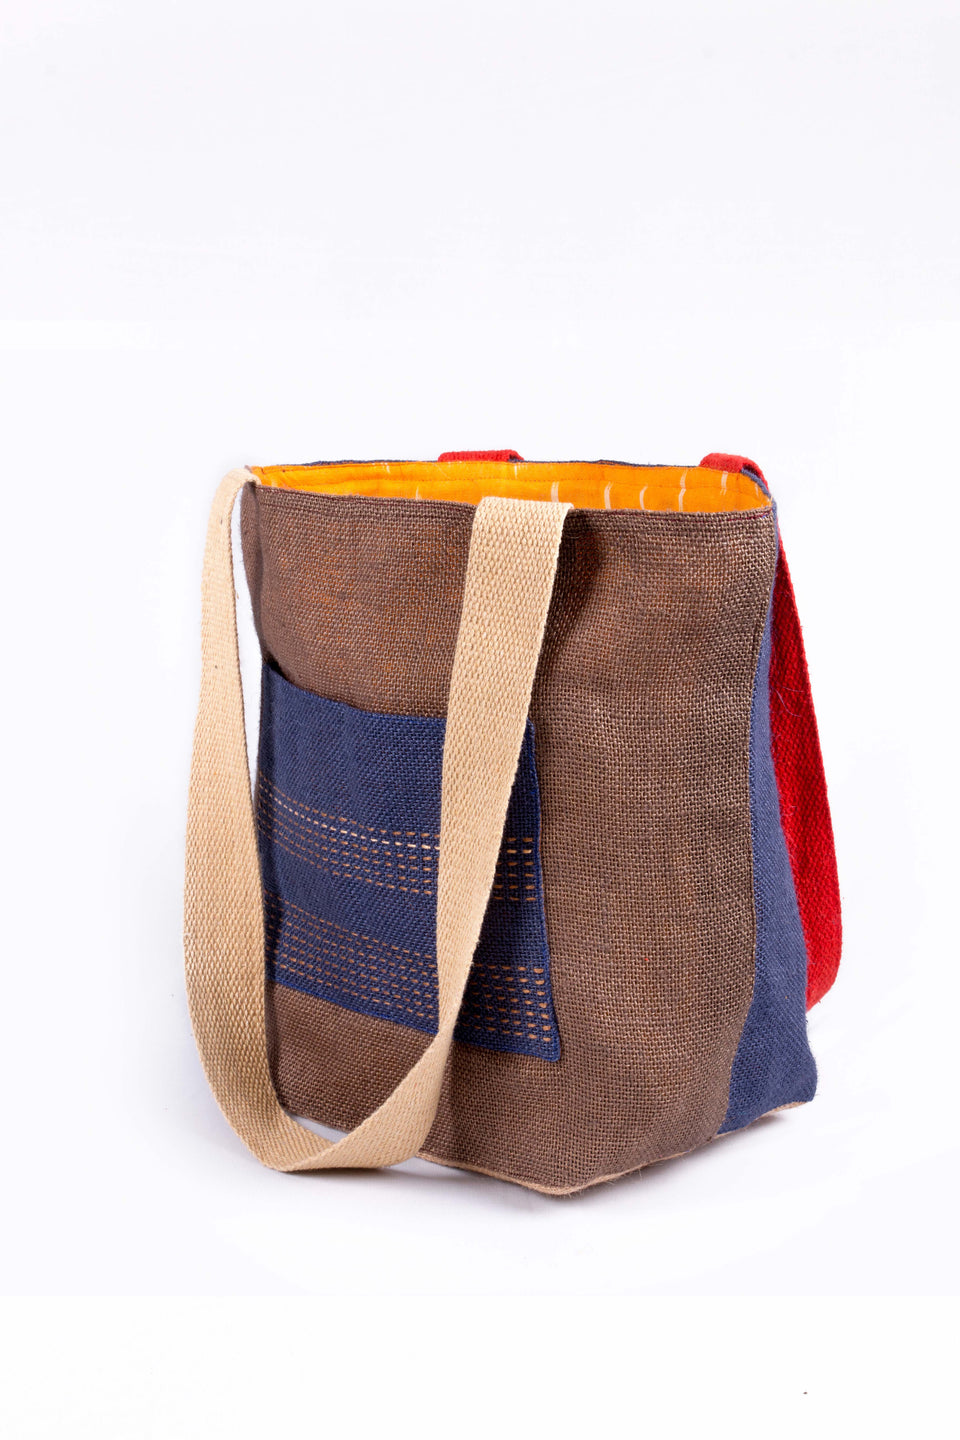 Bishesh Tote in Navy, Brown and Red